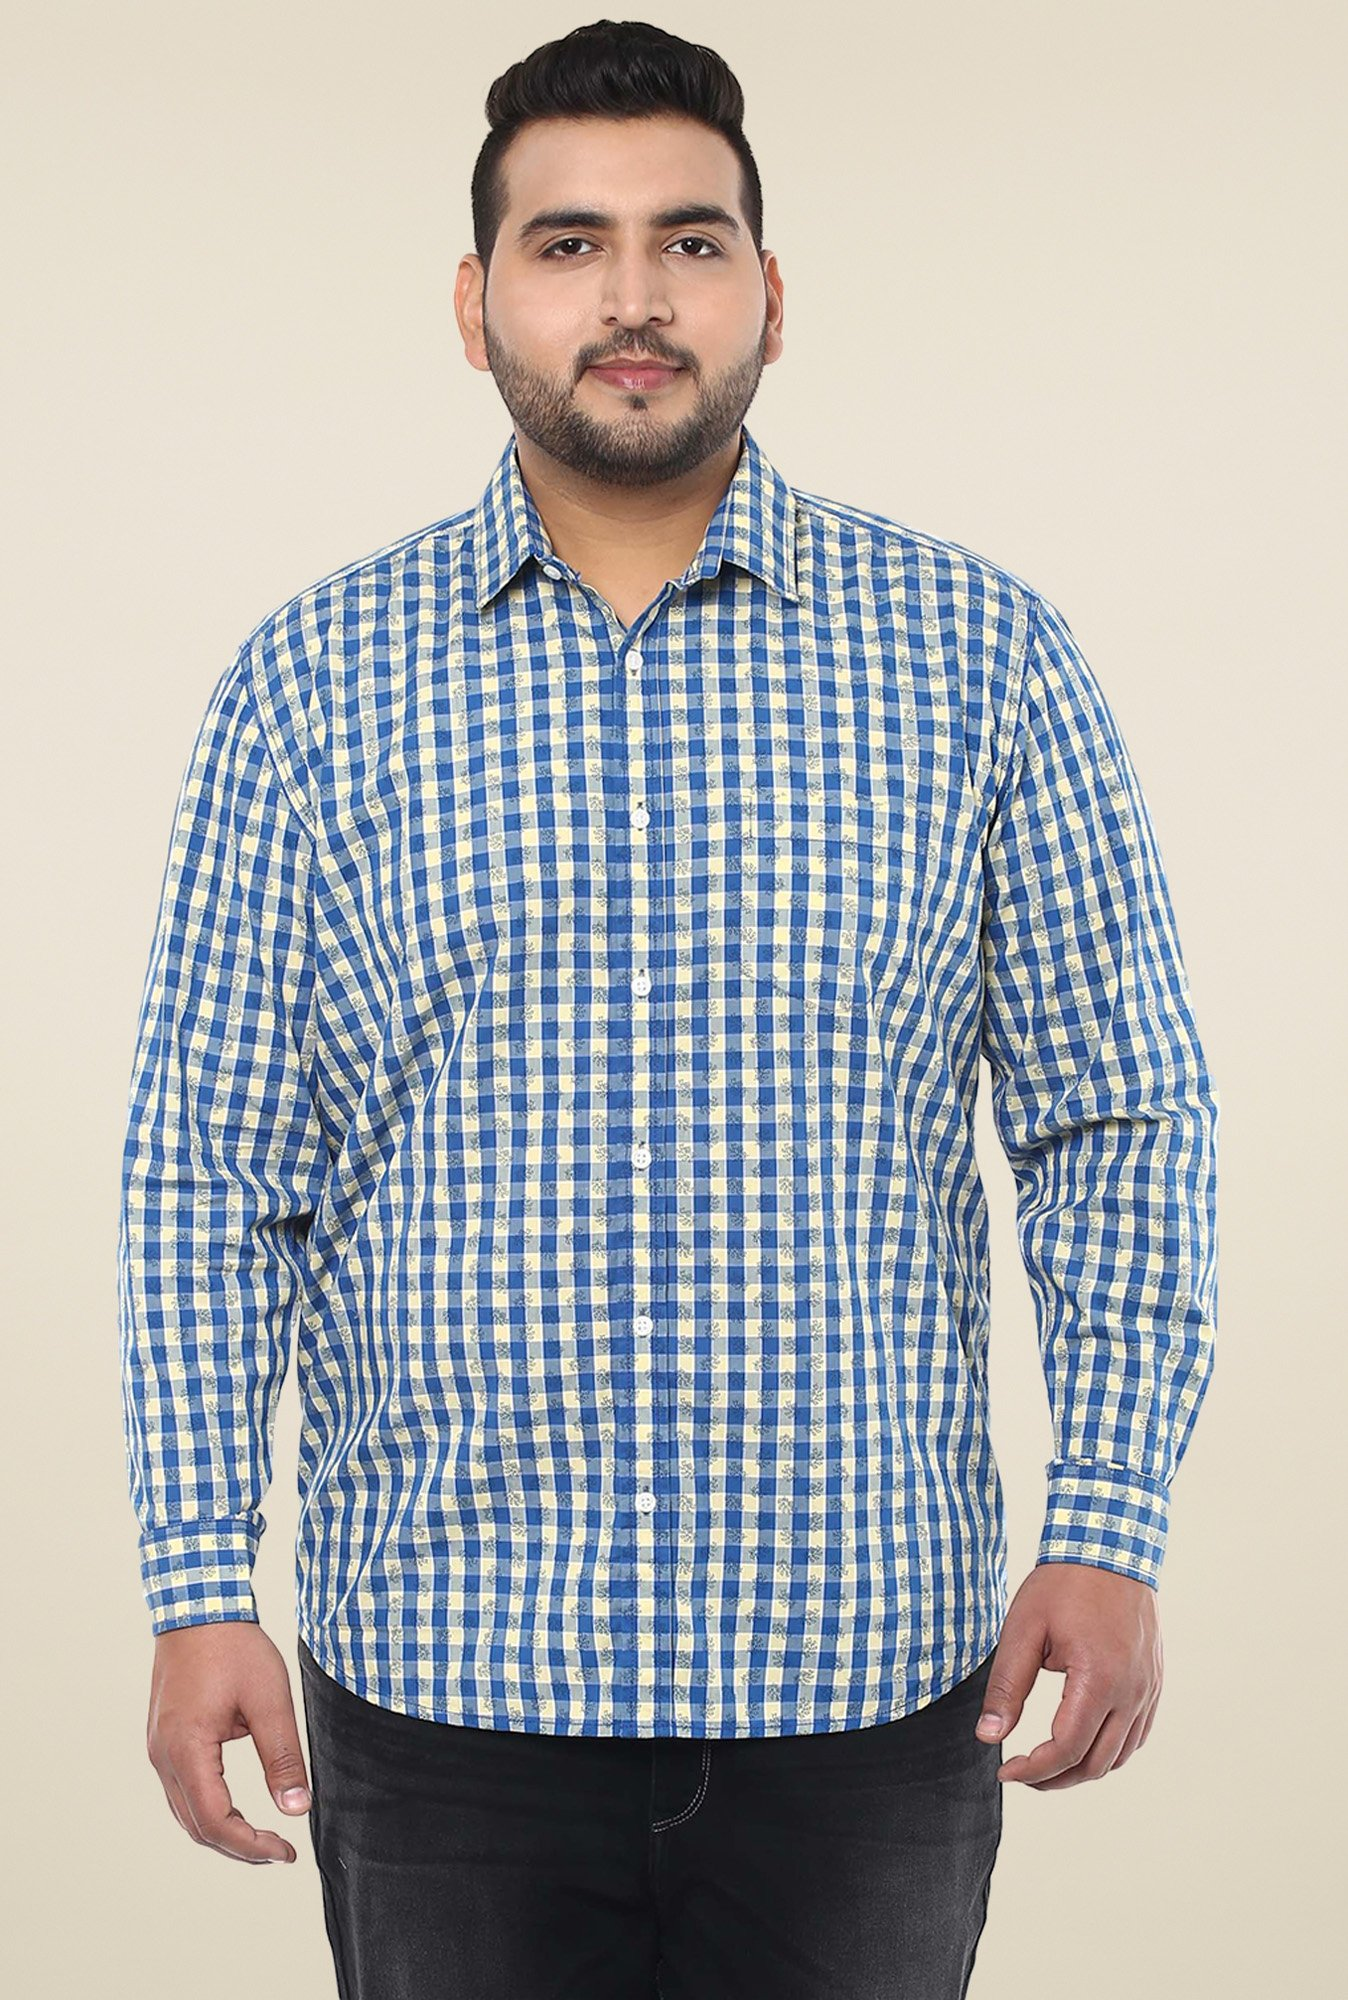 John Pride Blue & Cream Cotton Shirt